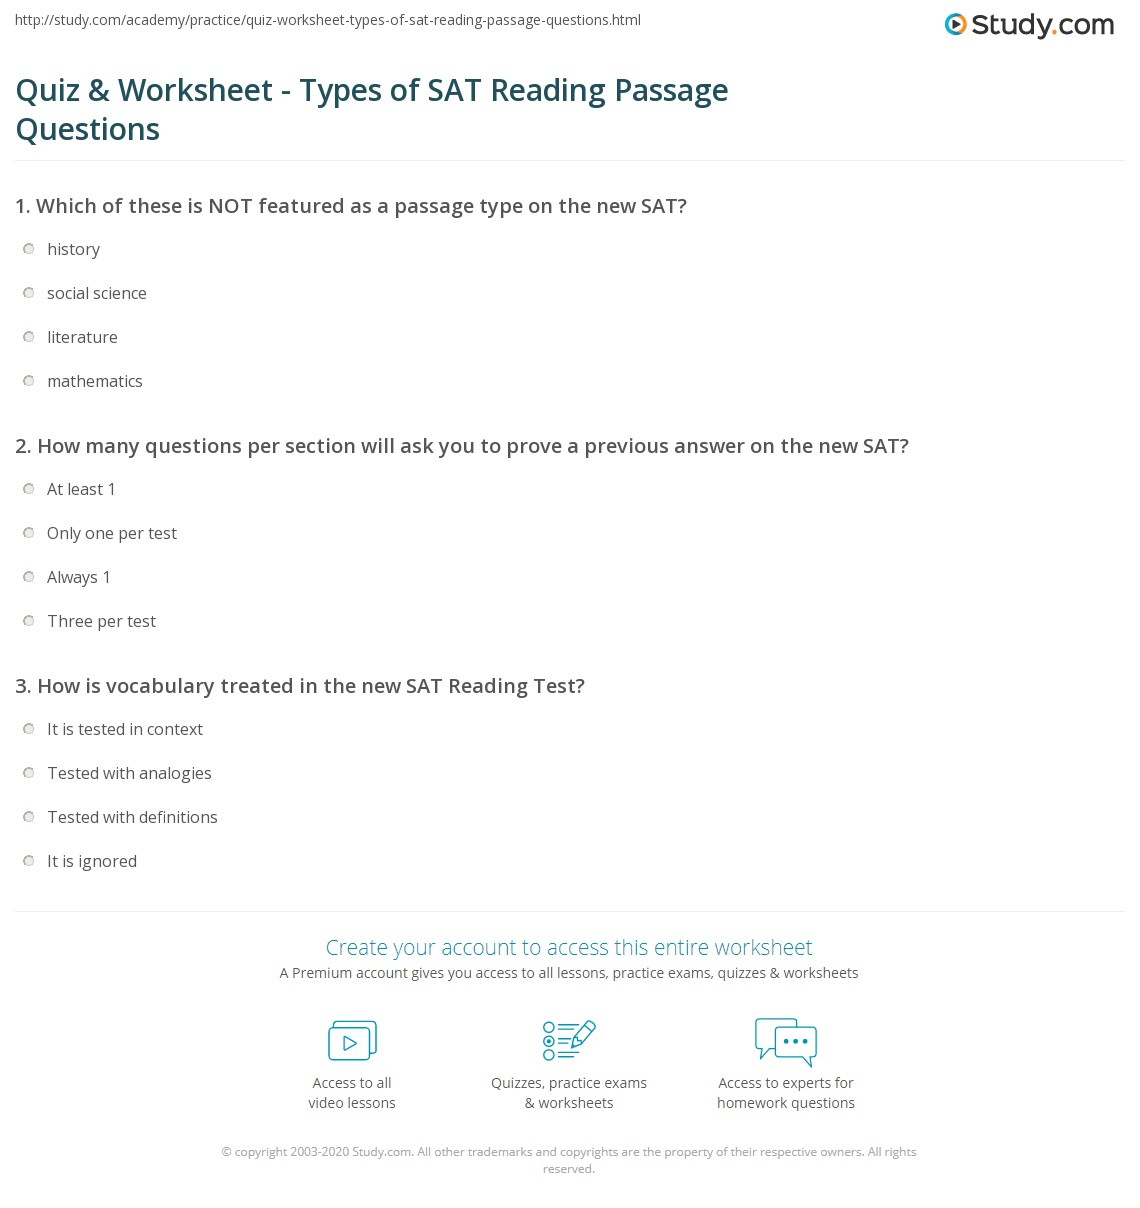 Quiz & Worksheet - Types of SAT Reading Passage Questions